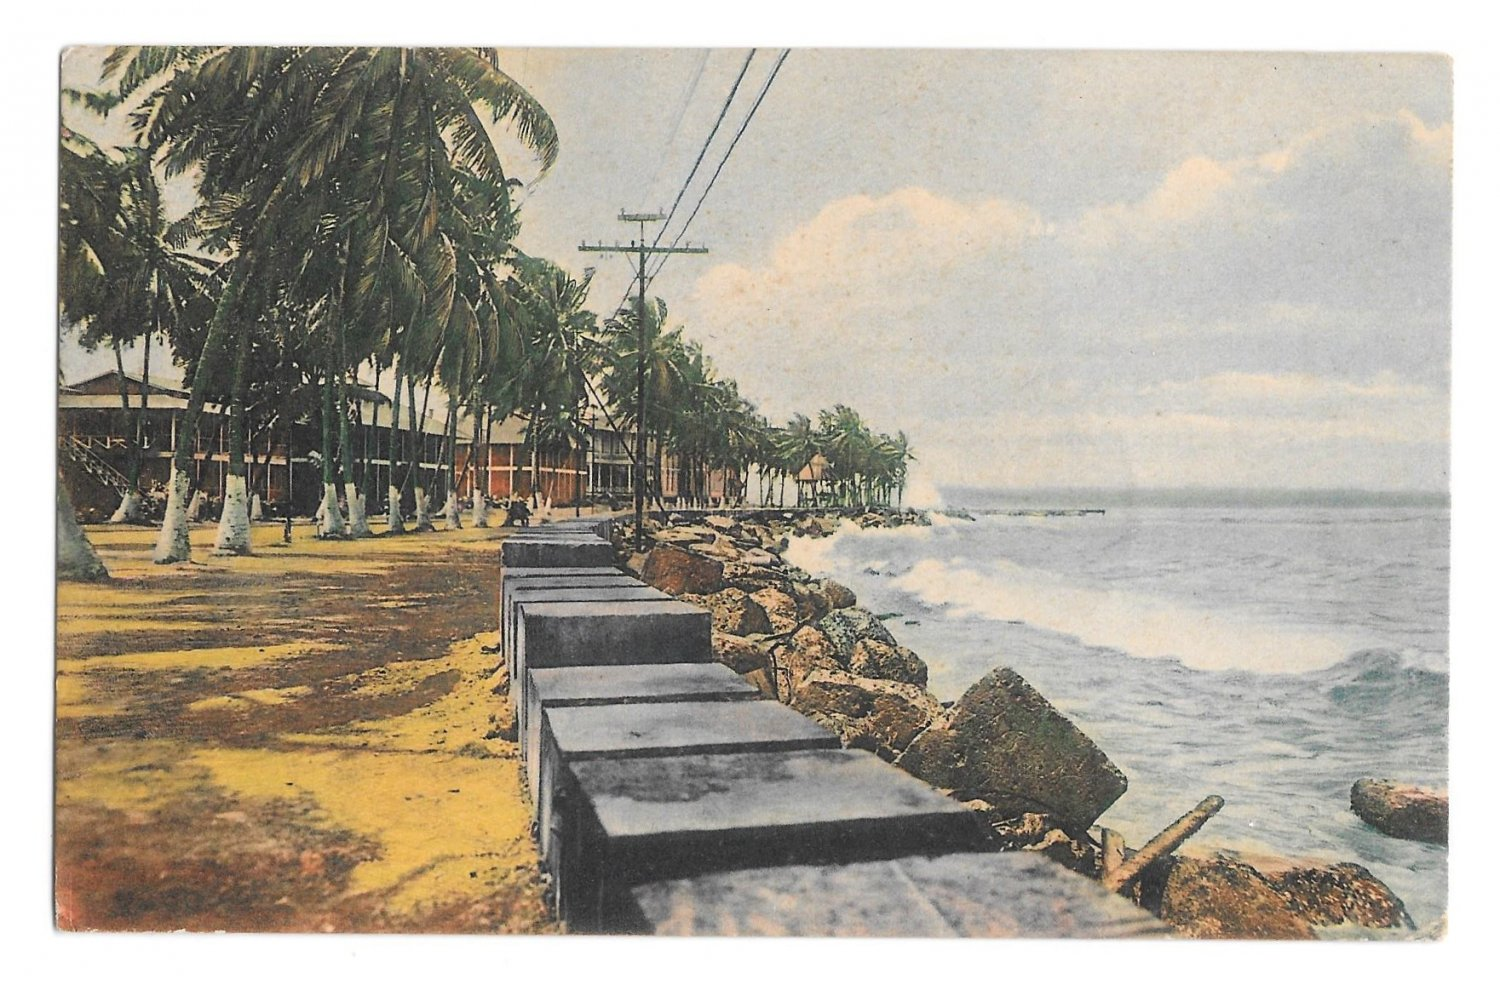 Norddeutscher Lloyd Bremen Colon Panama Entrance to Channel Vintage Postcard